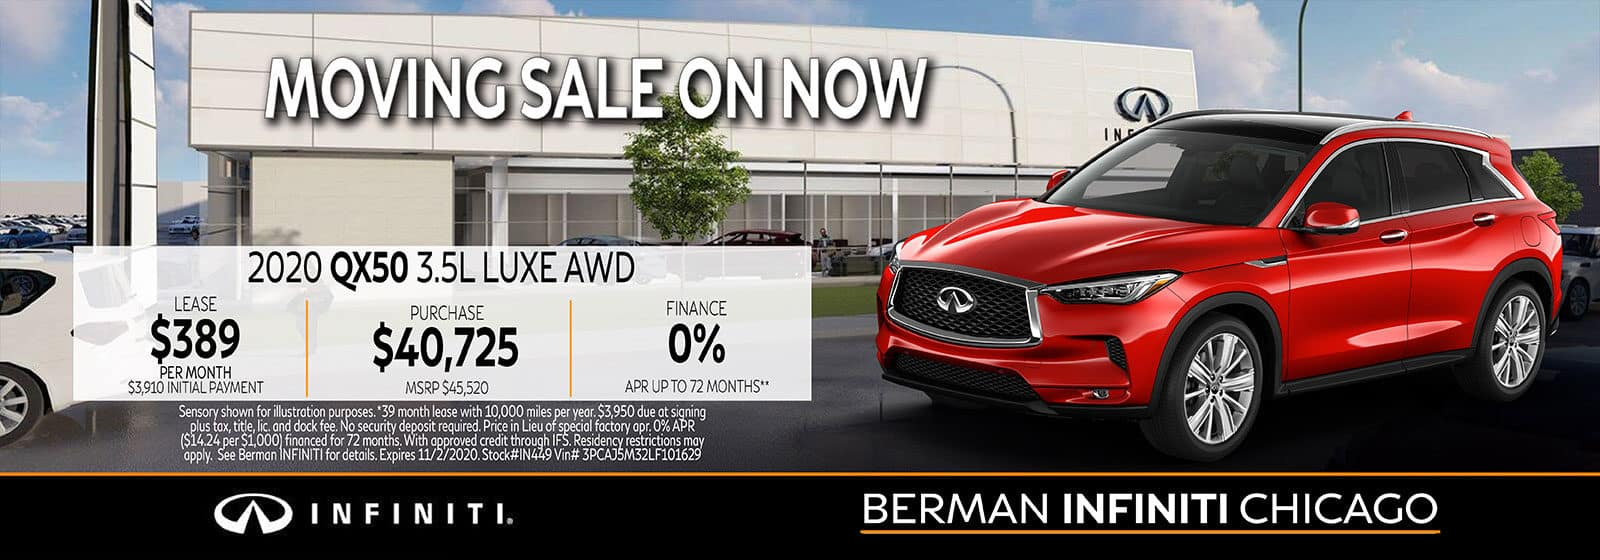 New 2020 INFINITI QX50 October offer at Berman INFINITI Chicago!